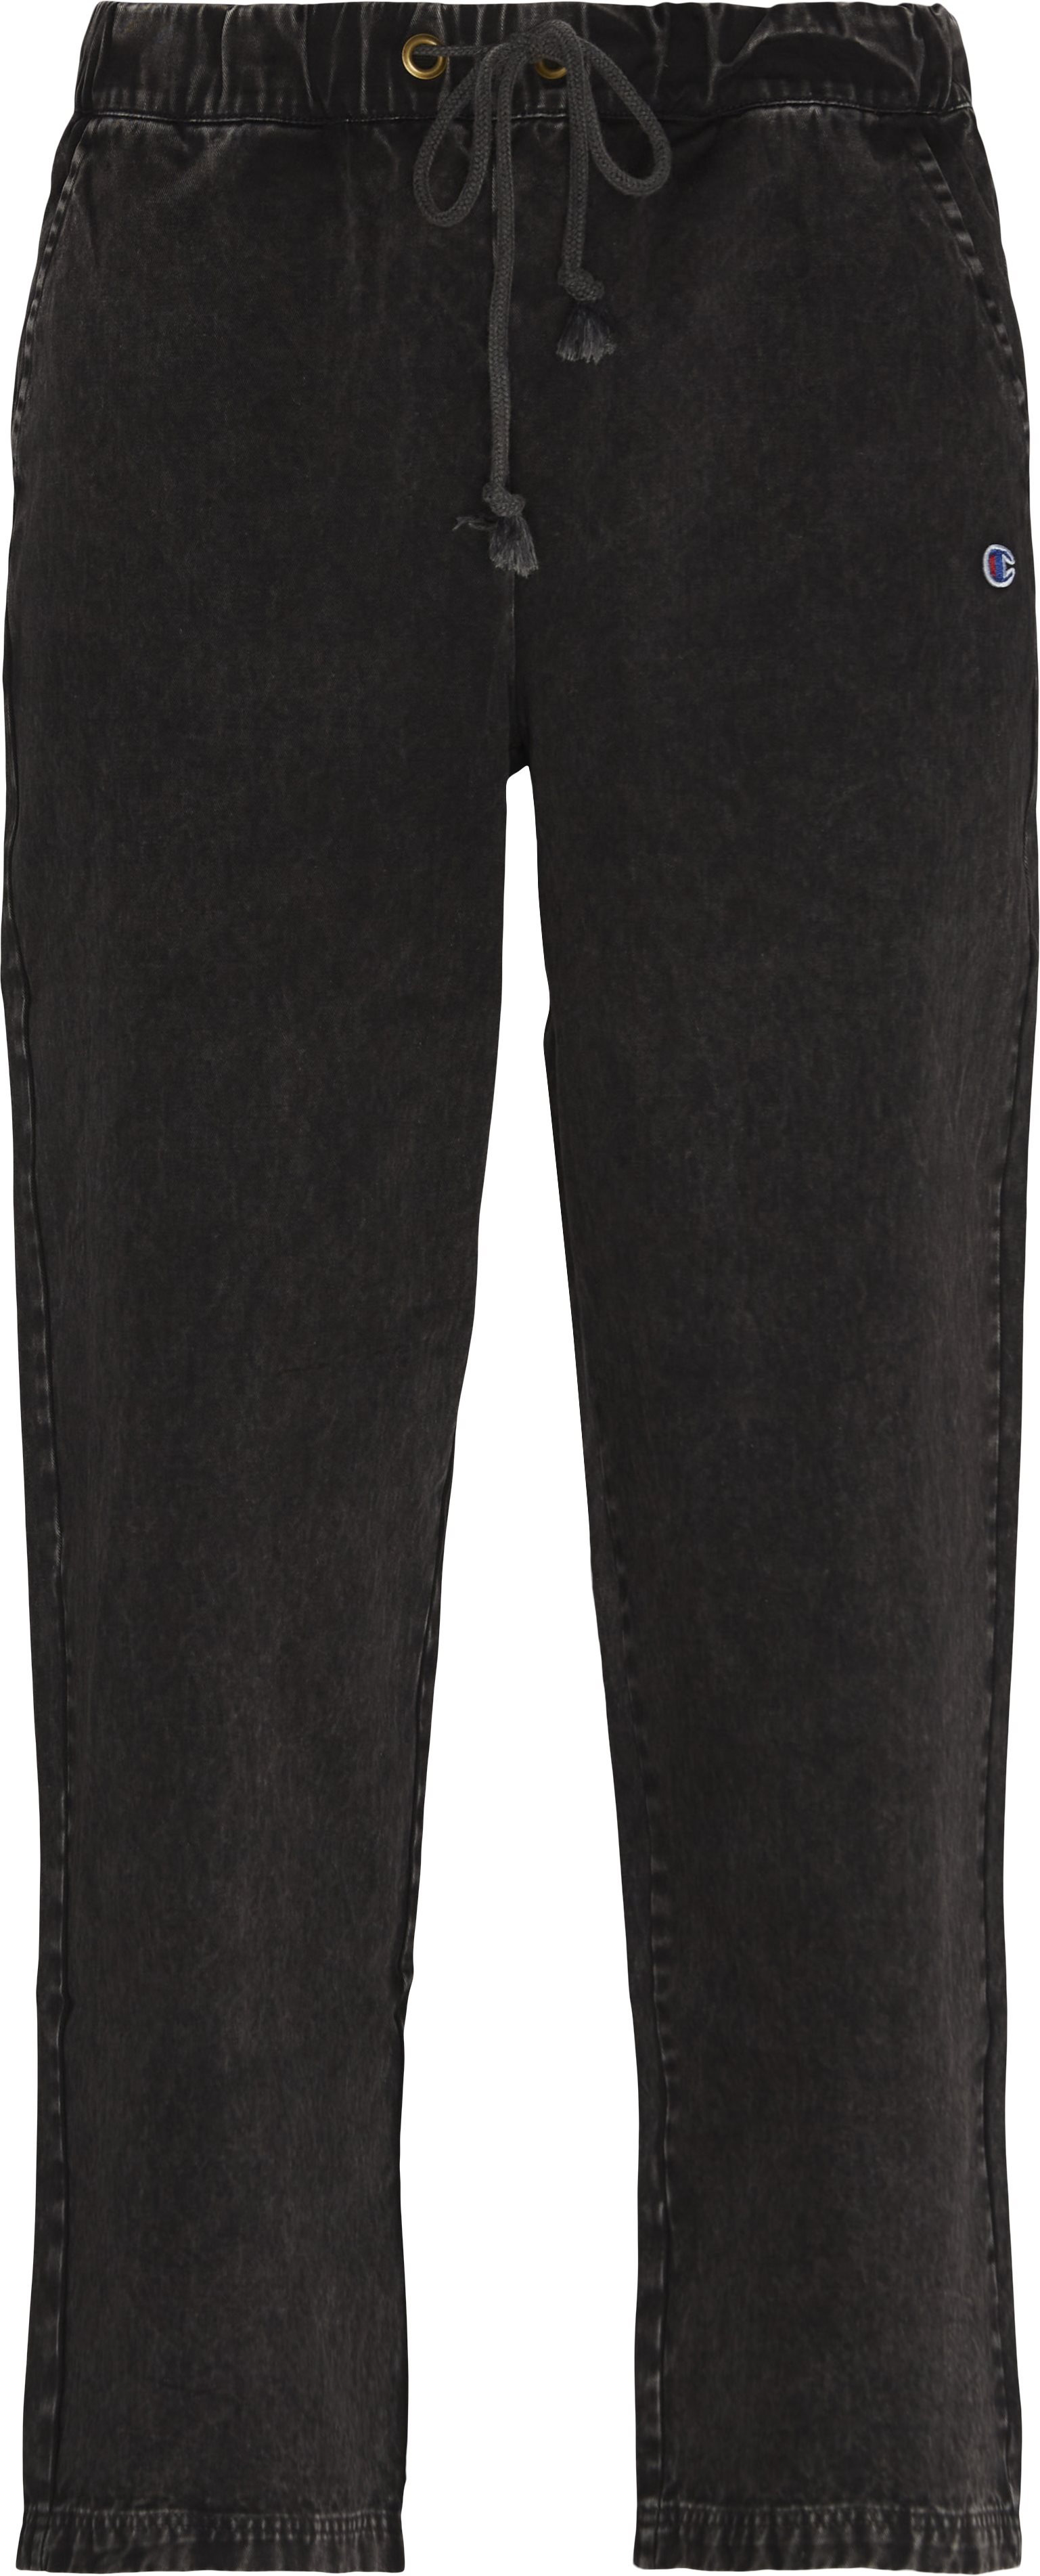 Trousers - Loose fit - Black